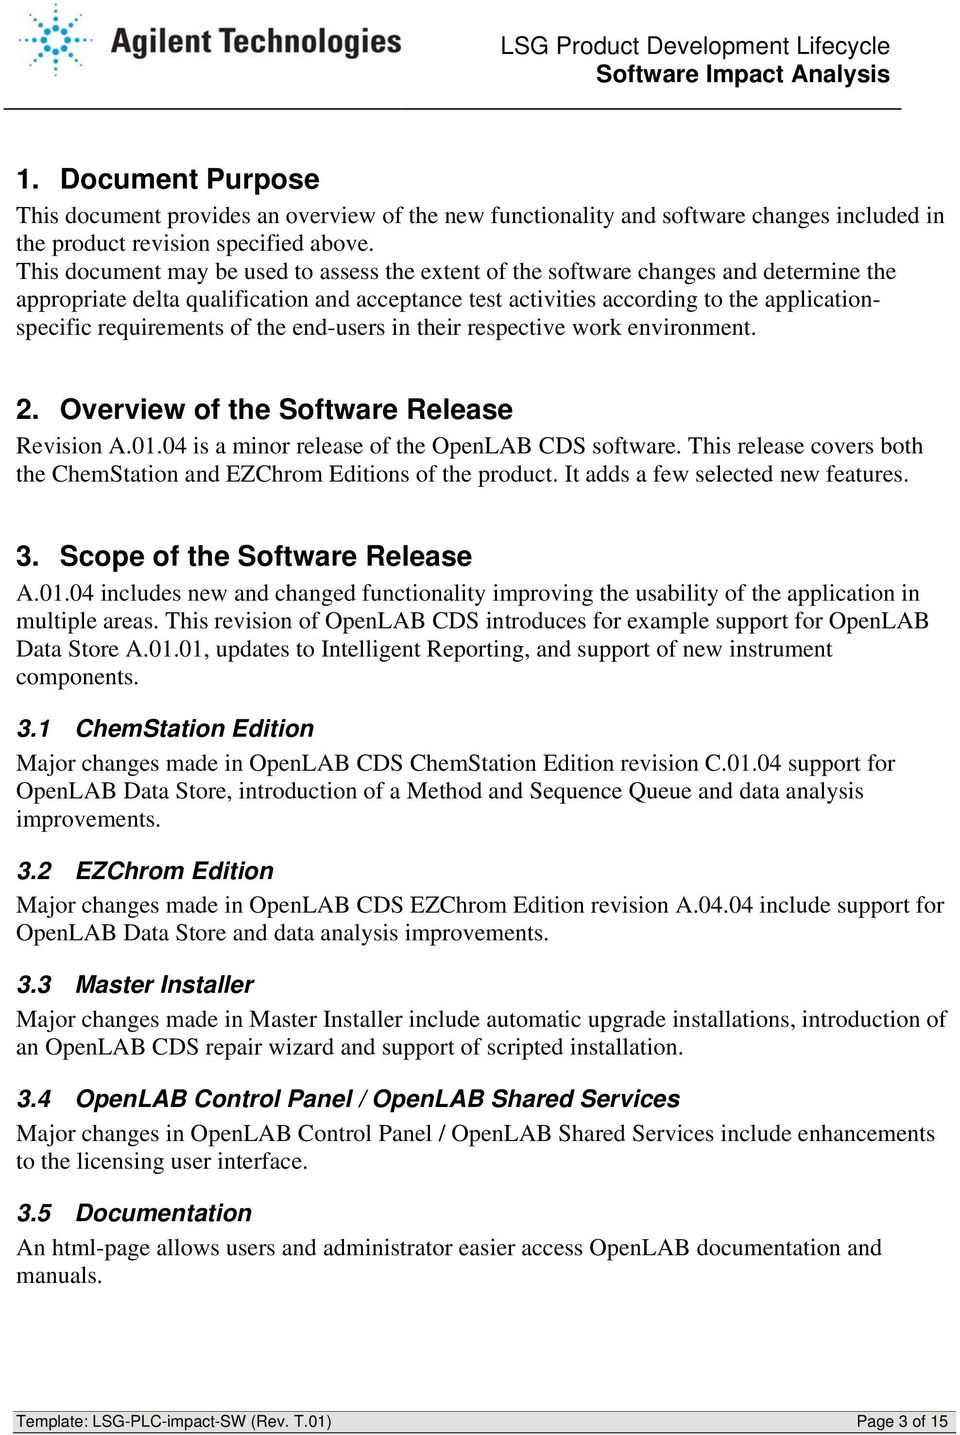 Impact Analysis for Software changes in OpenLAB CDS A PDF